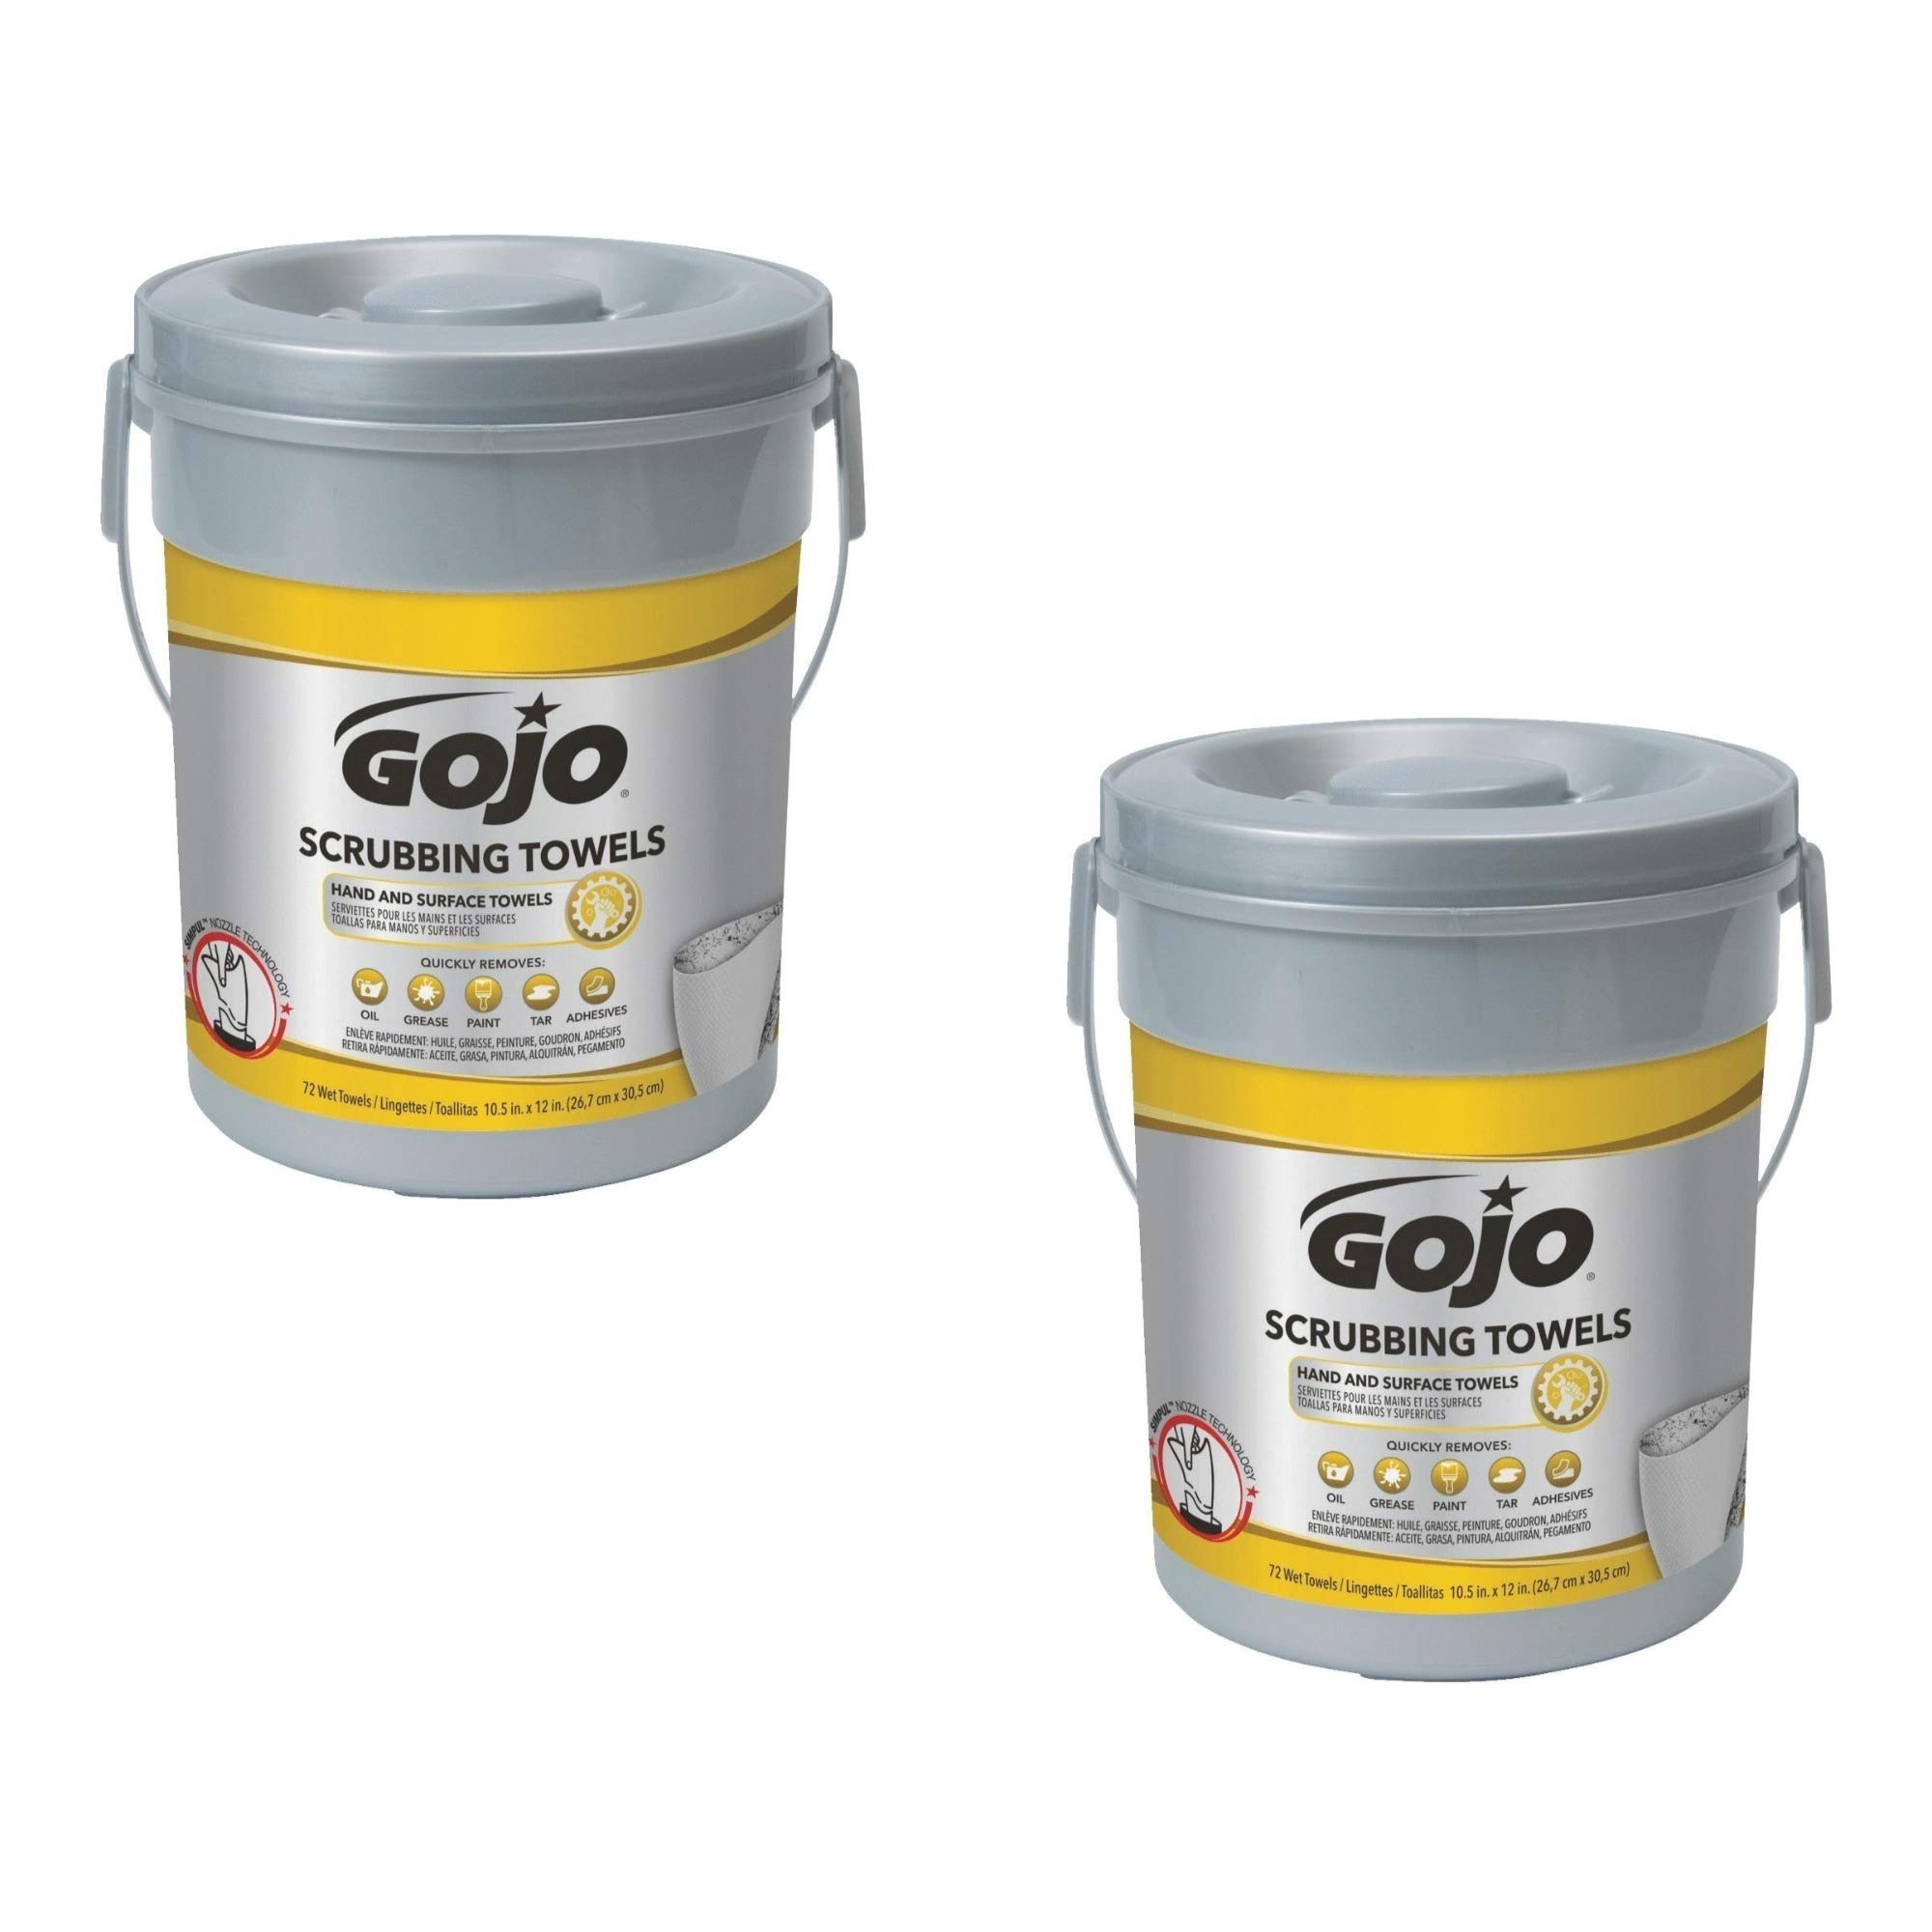 Gojo Dual Textured Scrubbing Wipes Canister 72 Wipes (2 Pack) (2)